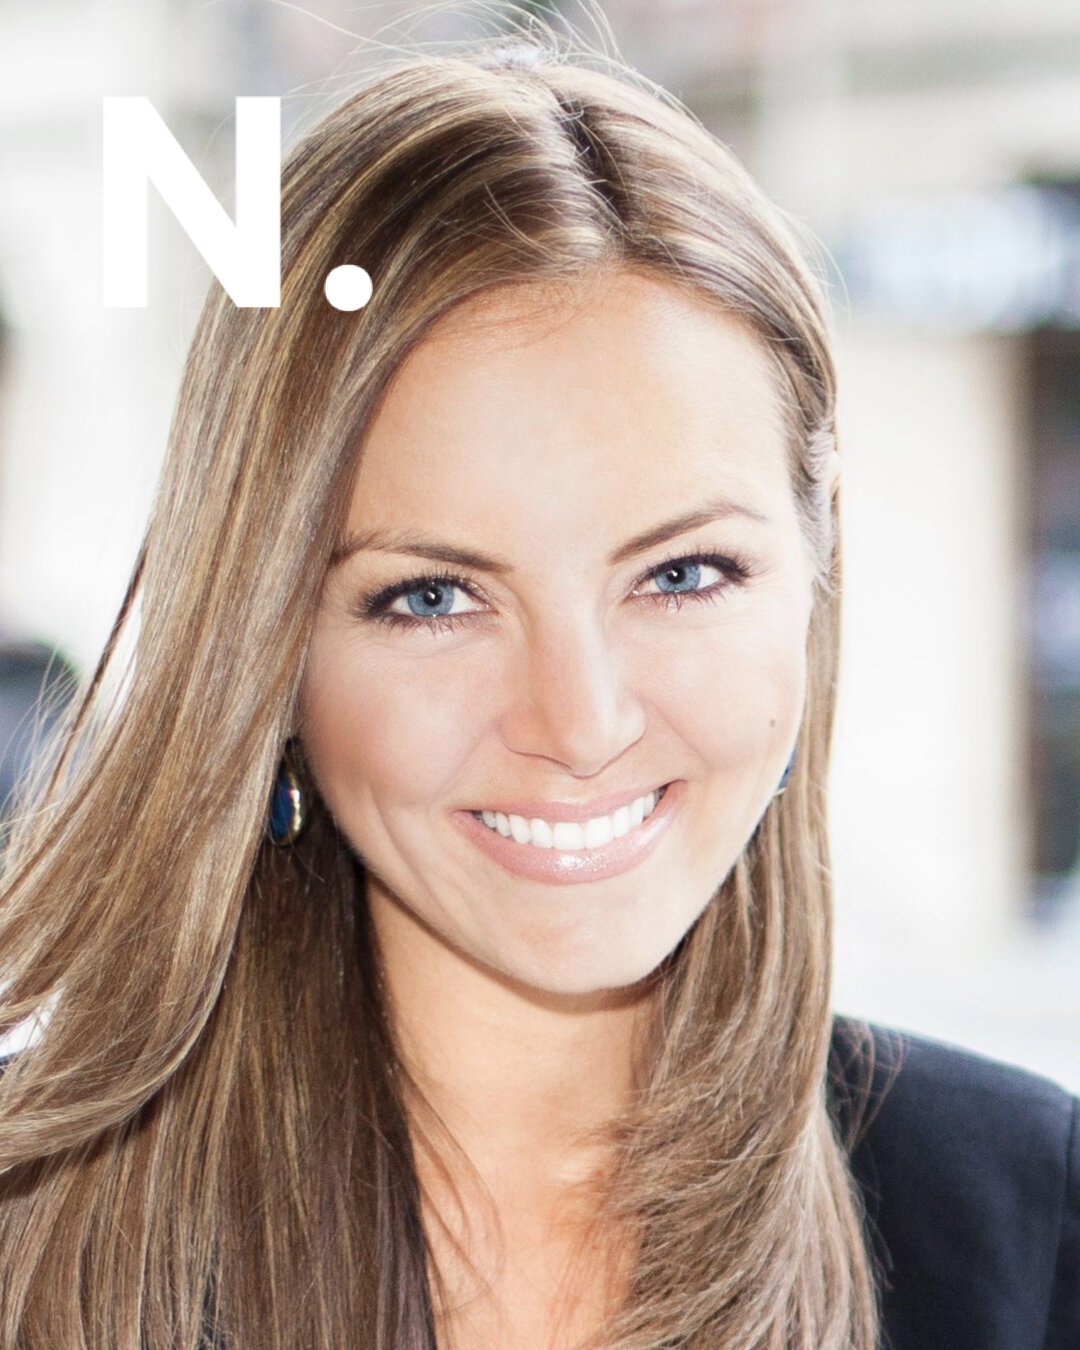 Nicole Lapin, NYT Bestselling Author, Boss Bitch - Nicole Lapin is an American TV personality, author and businesswoman. She is the NYT Bestselling author of